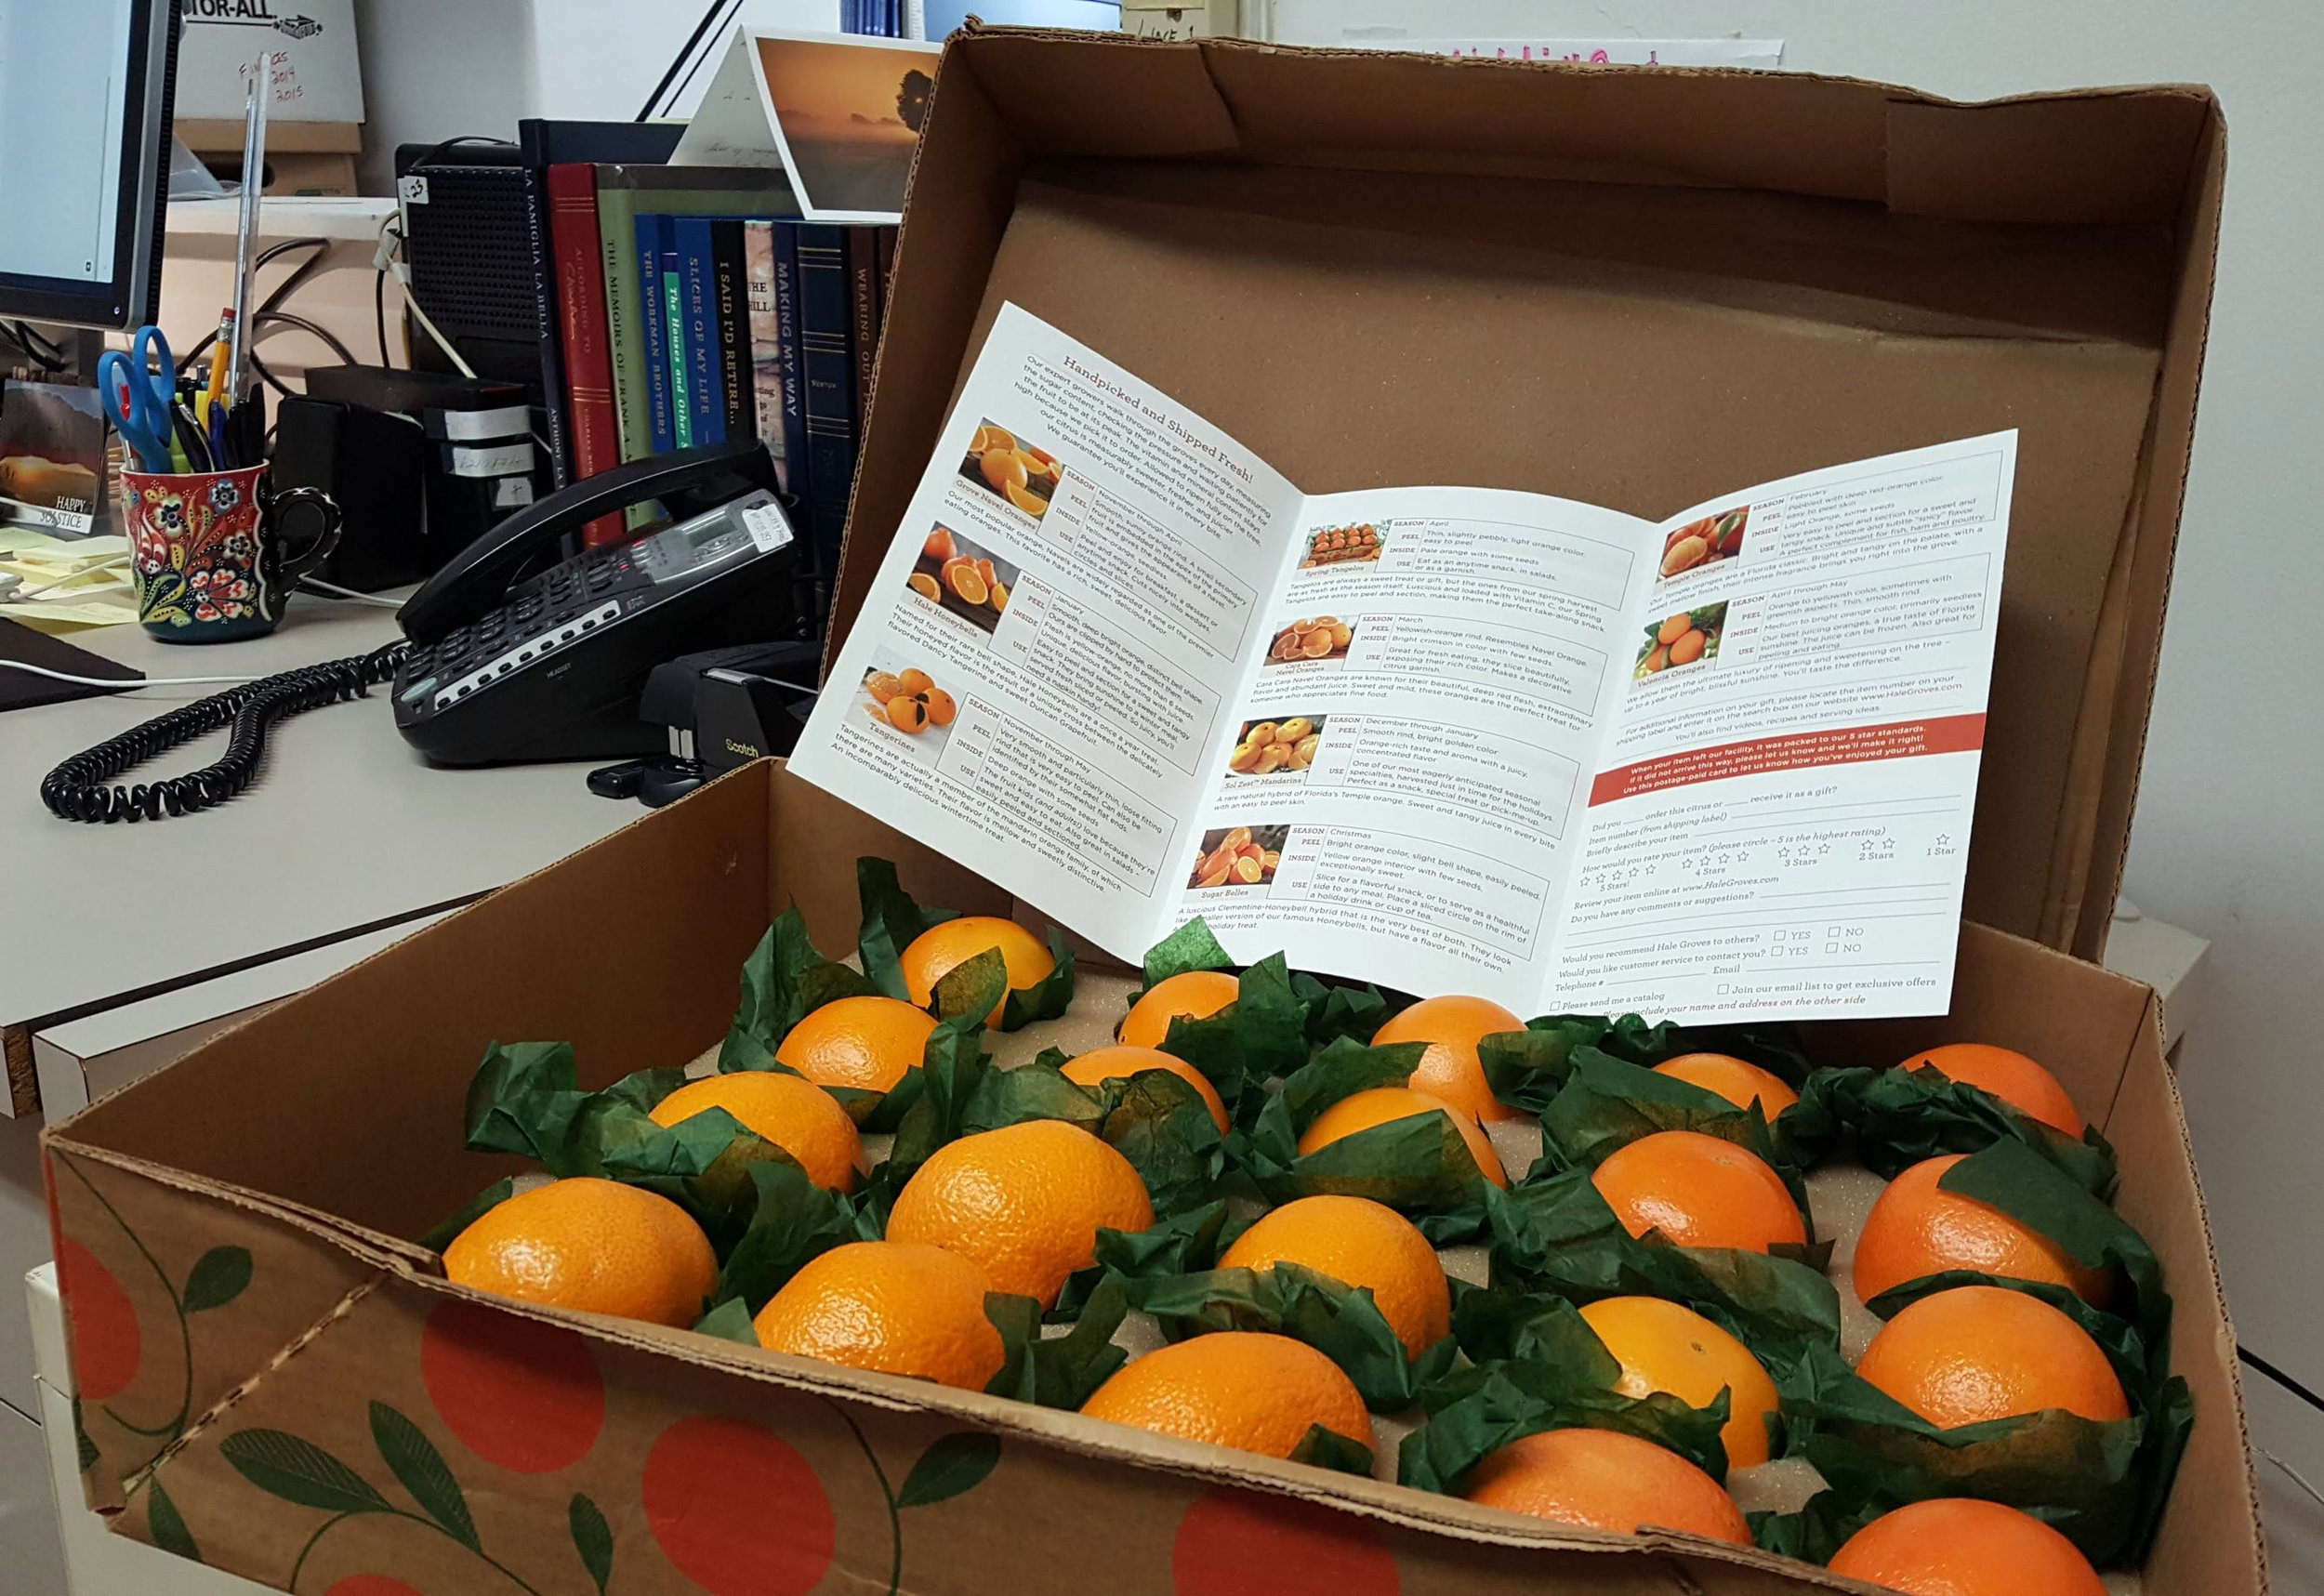 A client's holiday gift of delicious oranges